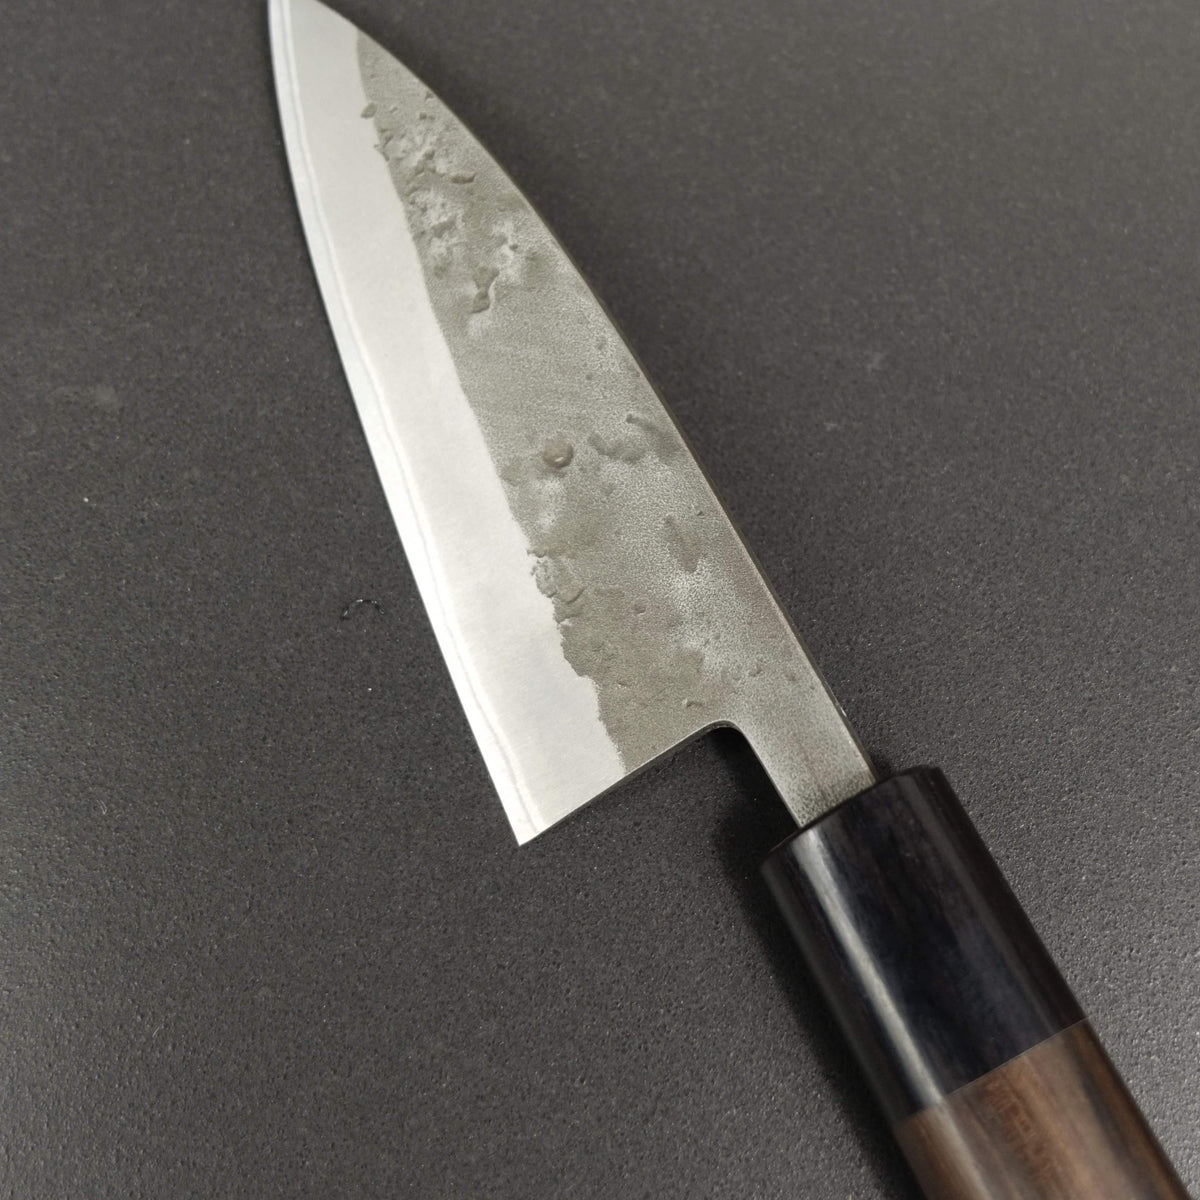 Ajikiri knife, Aogami 2 core with stainless steel cladding, nashiji finish - Ohishi